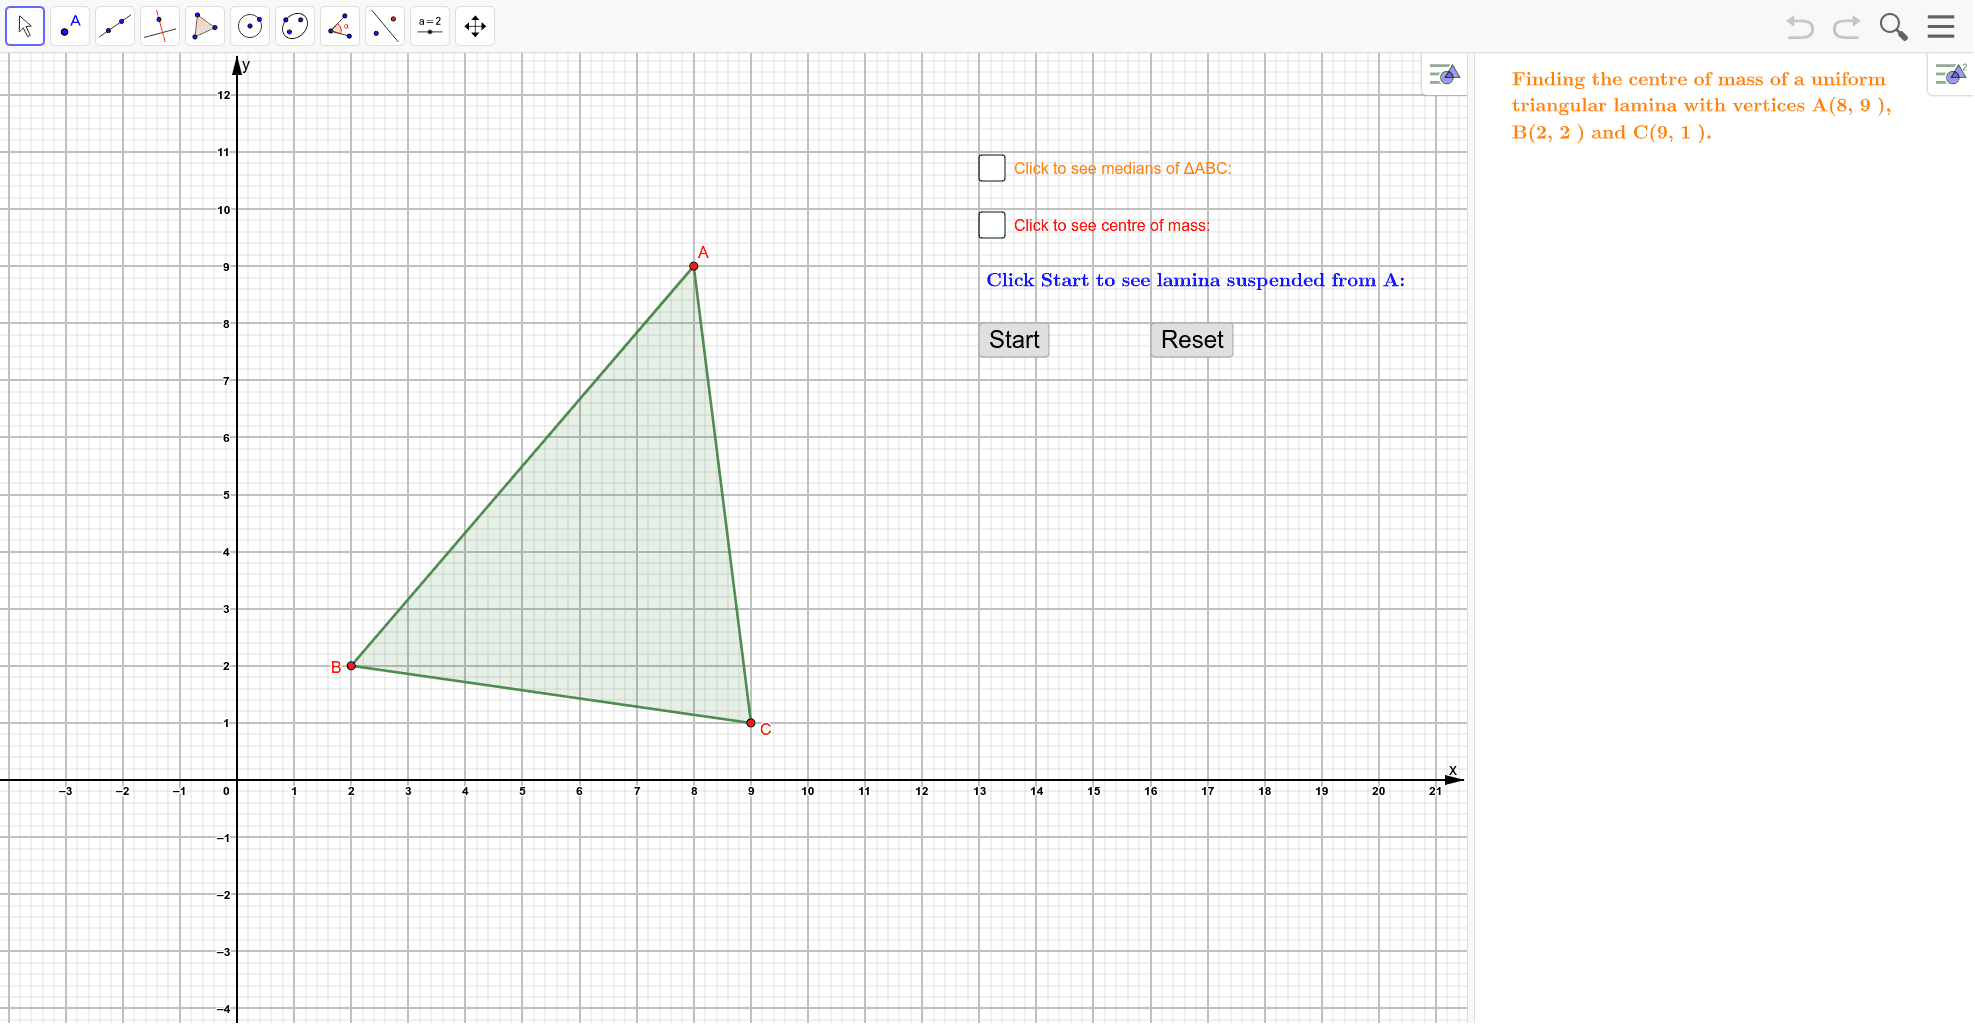 Move the points A, B and C using your mouse or finger. Please make the y-coordinate of A larger than the y-coordinates of B and C. Press Enter to start activity